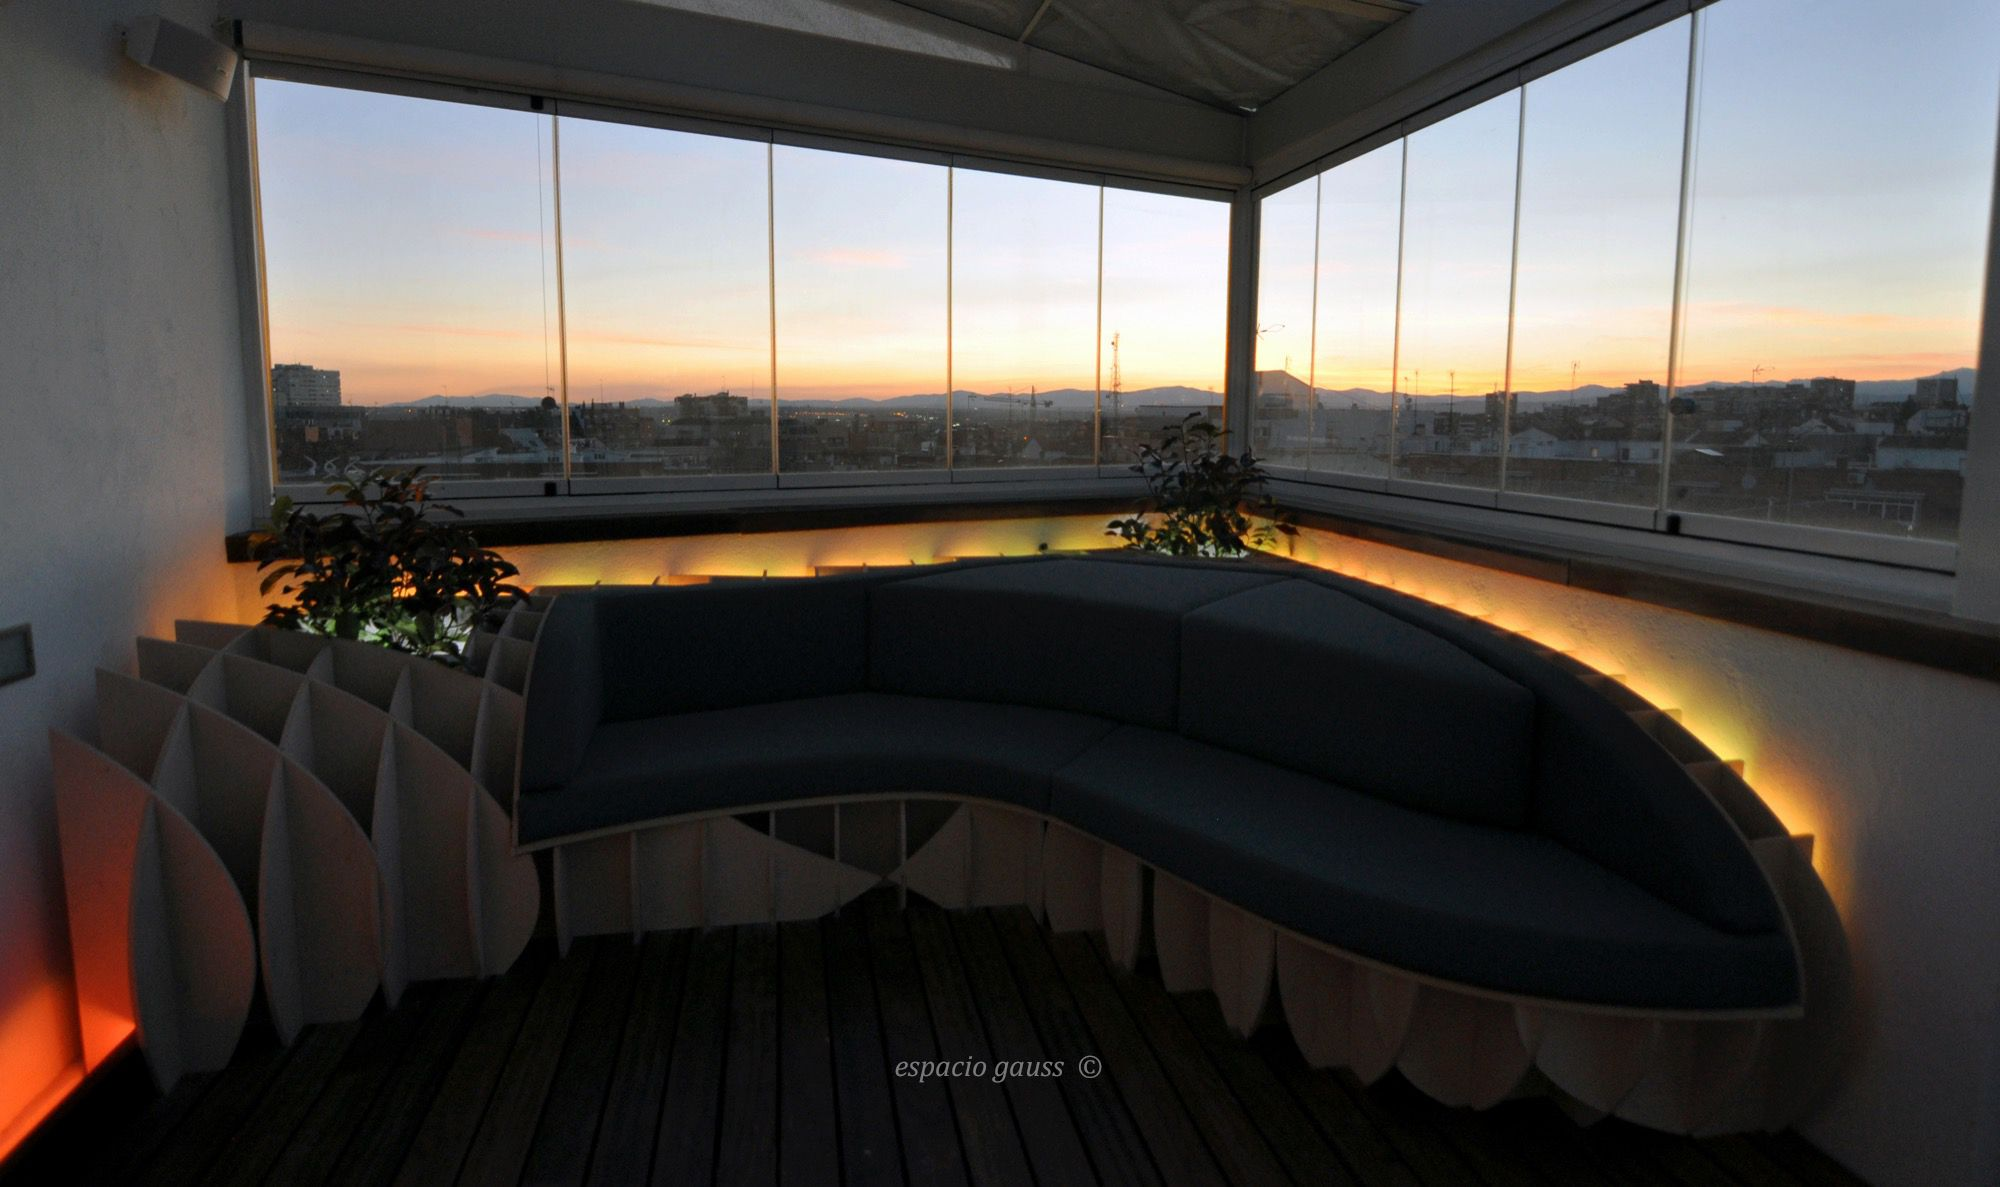 Madrid Rooftop Chillout Design Architecture Terraza